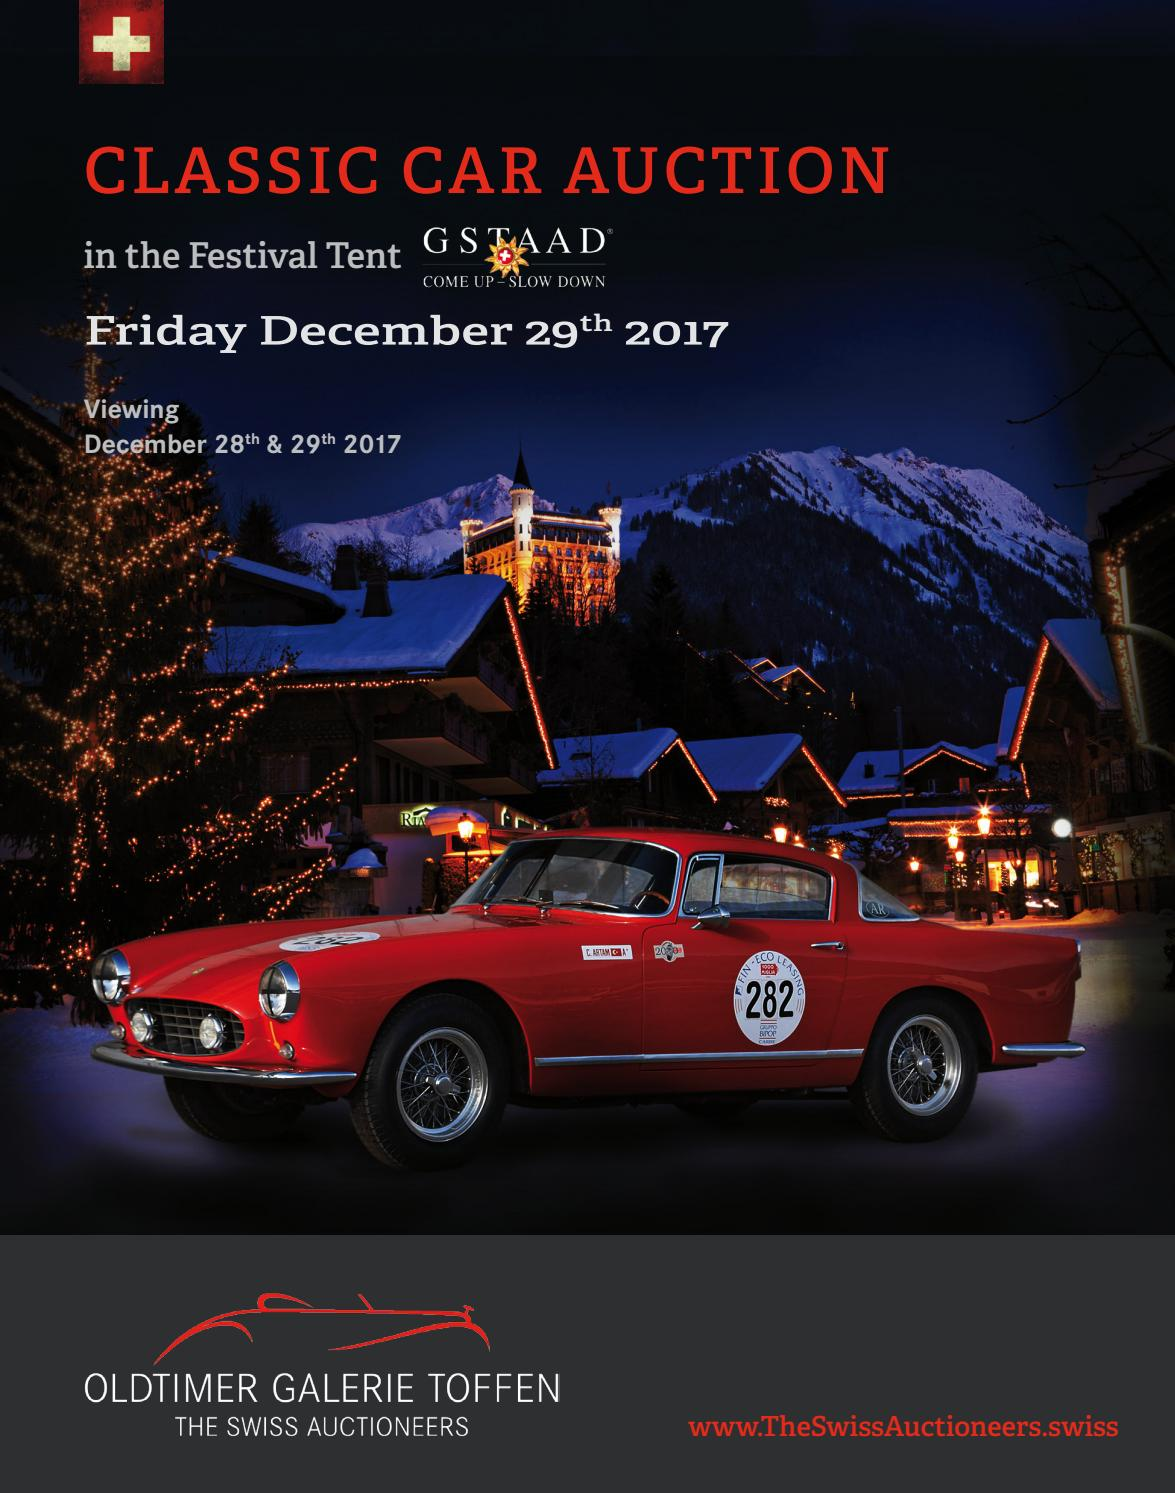 Store Vertical Exterieur Coupe Vent Gstaaad Classic Car Auction December 29th 2017 By Oldtimer